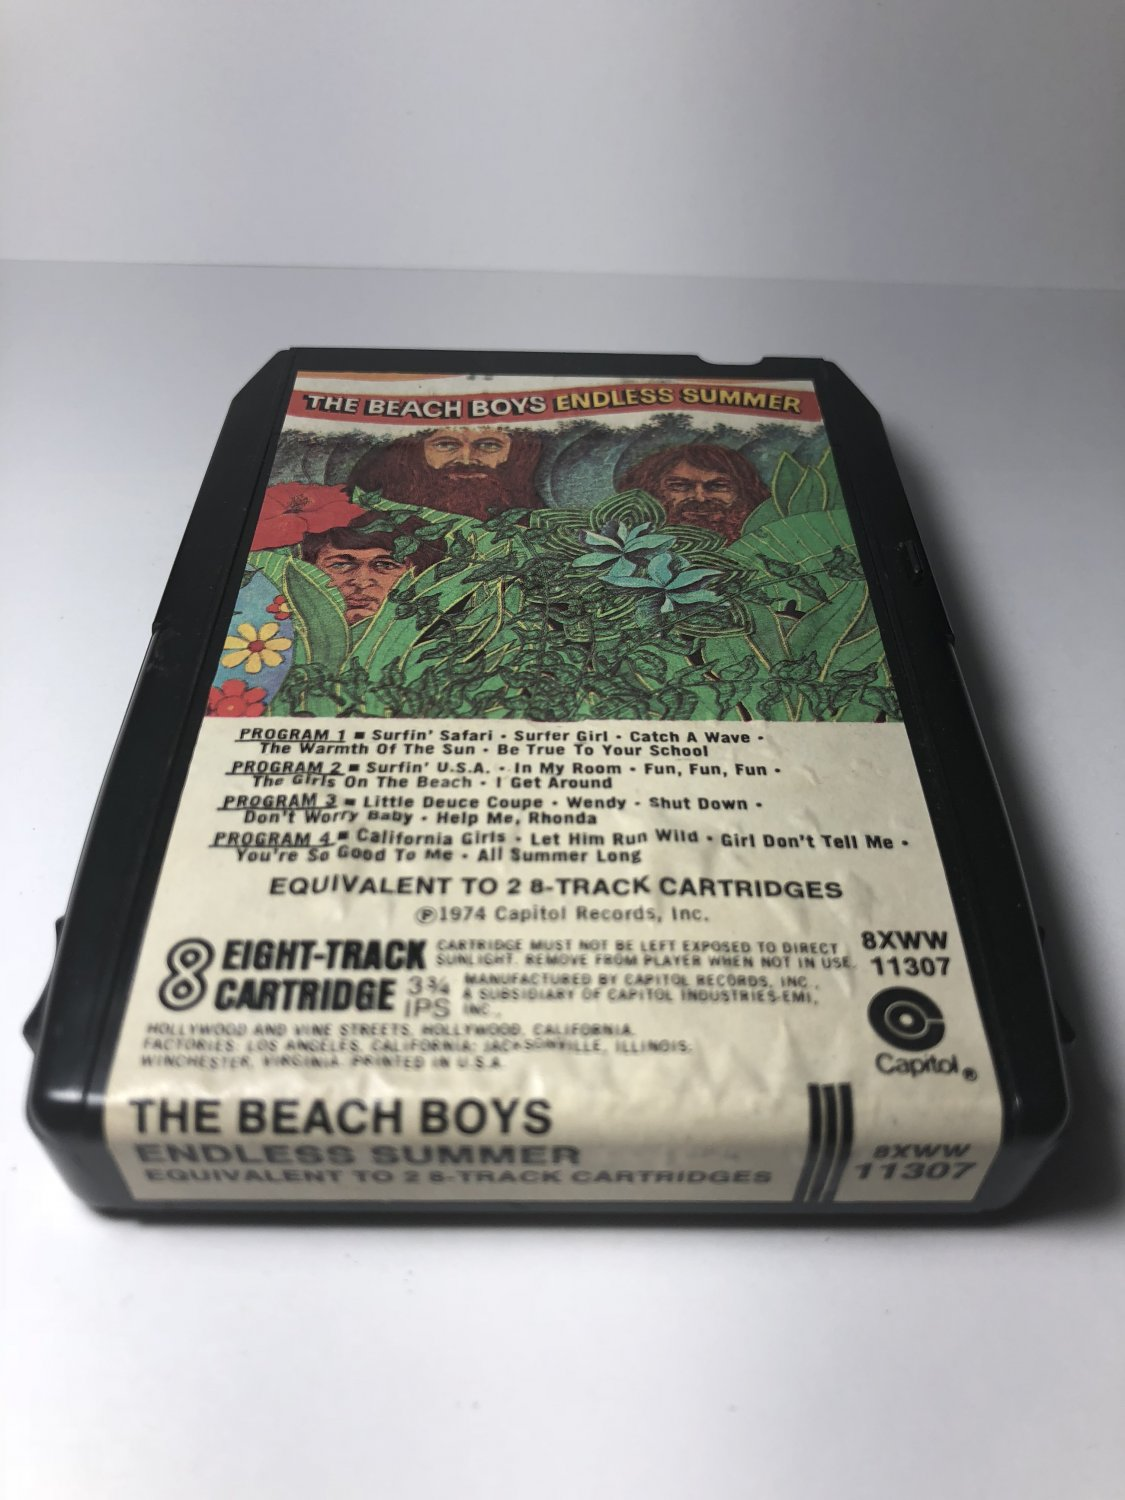 Restore Your Own - Beach Boys Endless Summer AS-IS 8-TRACK TAPE